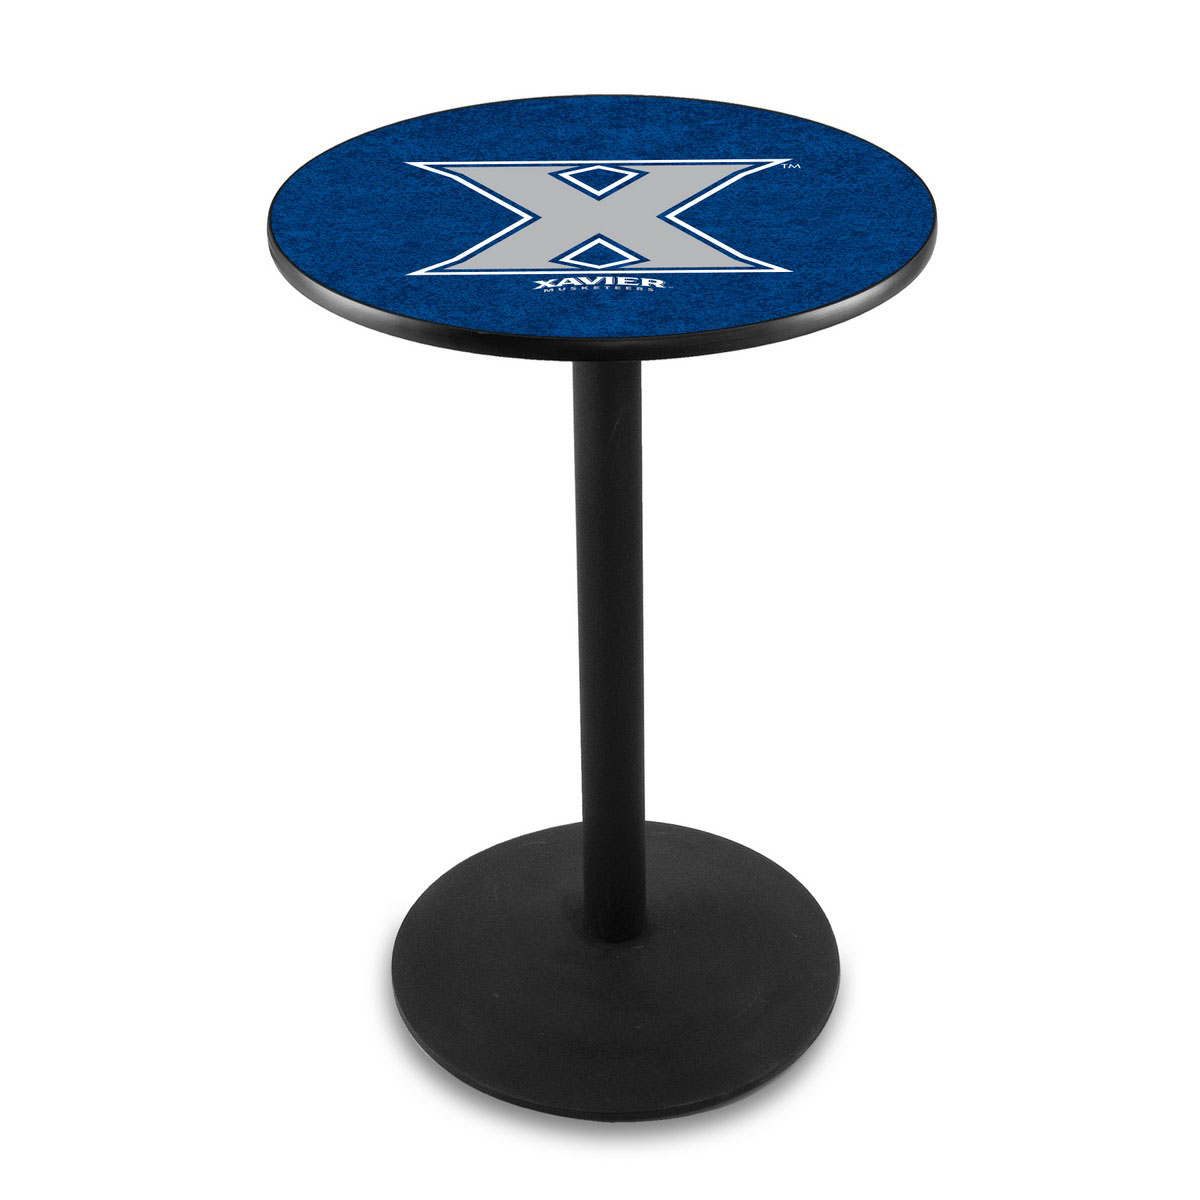 Xavier Logo Pub Bar Table Round Stand 1840